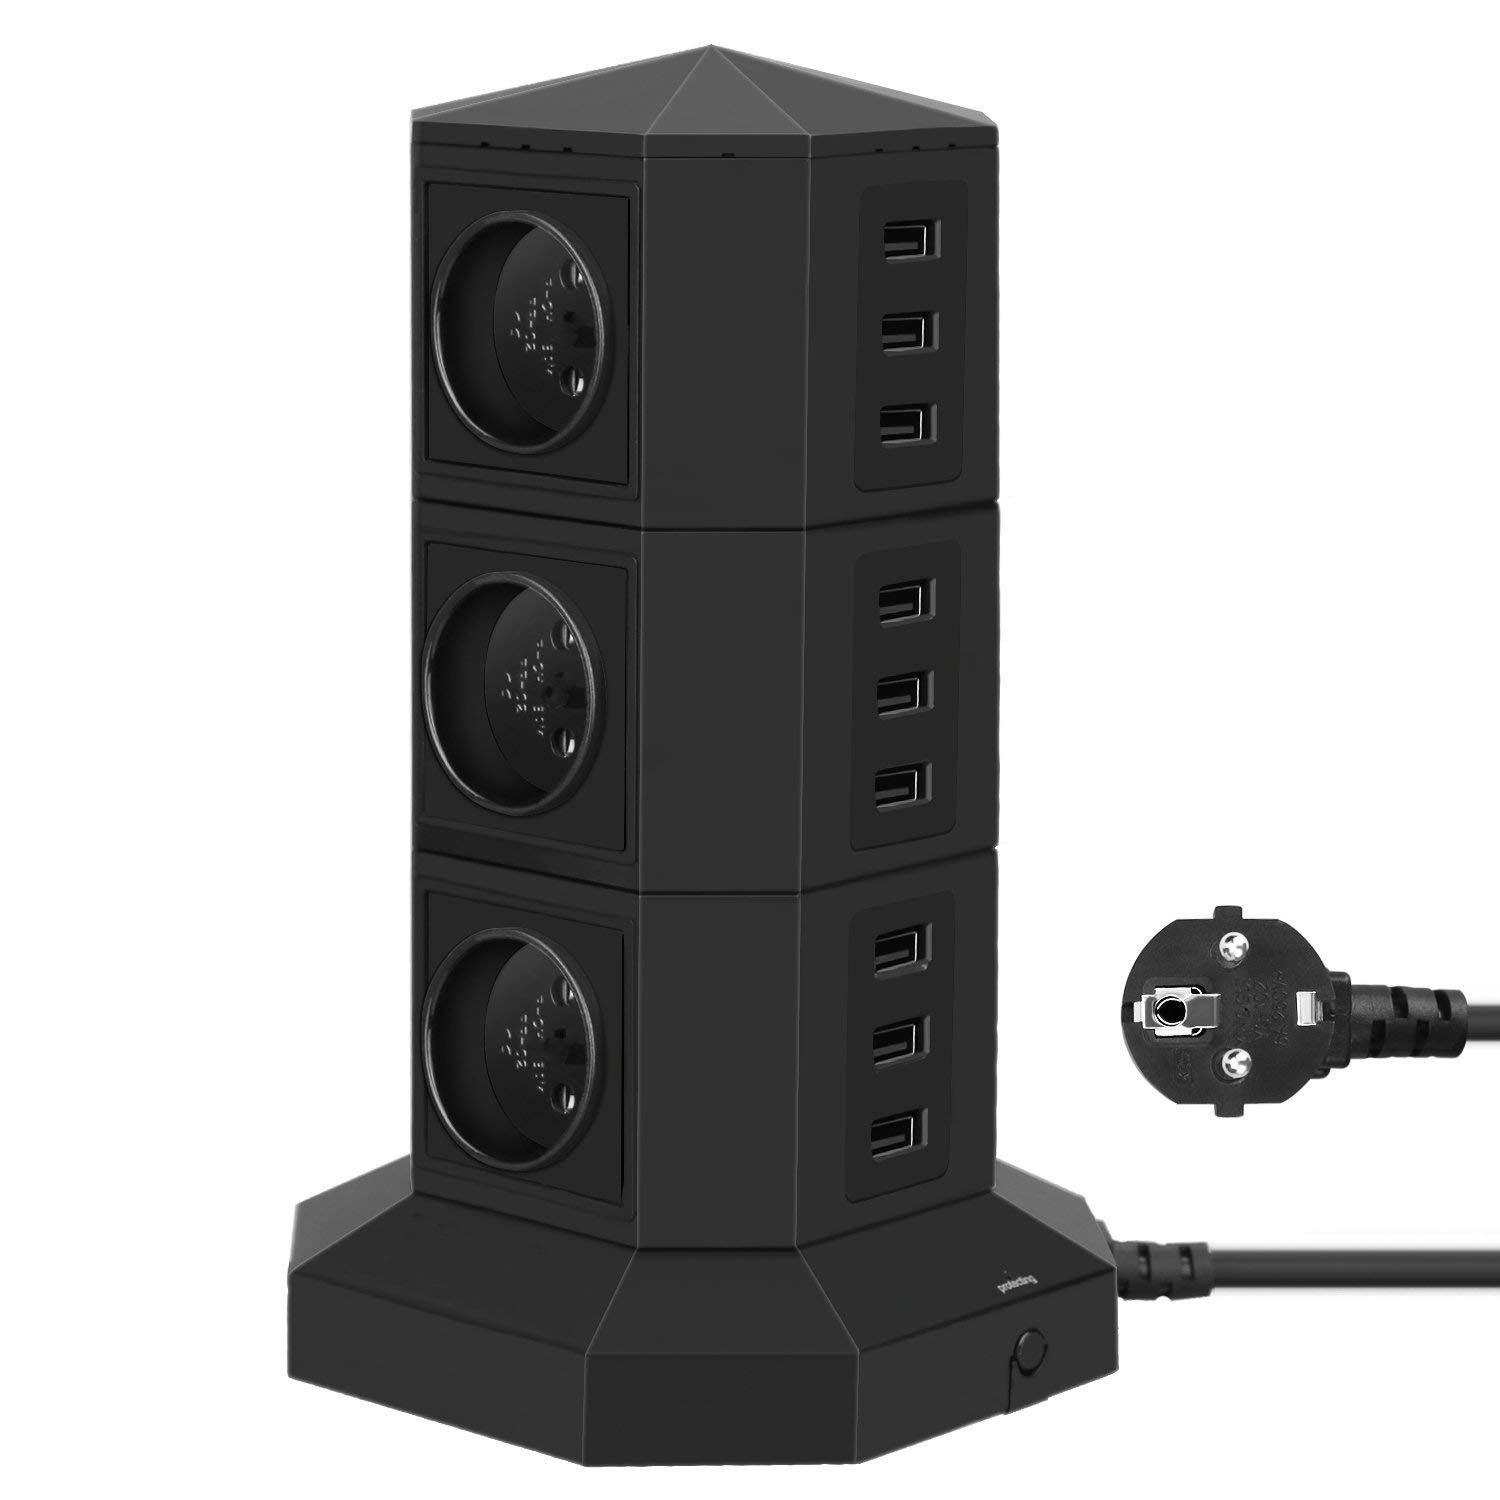 цена на USB Power Strip Surge Protector Multiple Socket 6-Way EU Outlets,9 USB Ports,Single Switchable Tower with 2m Extension Cable